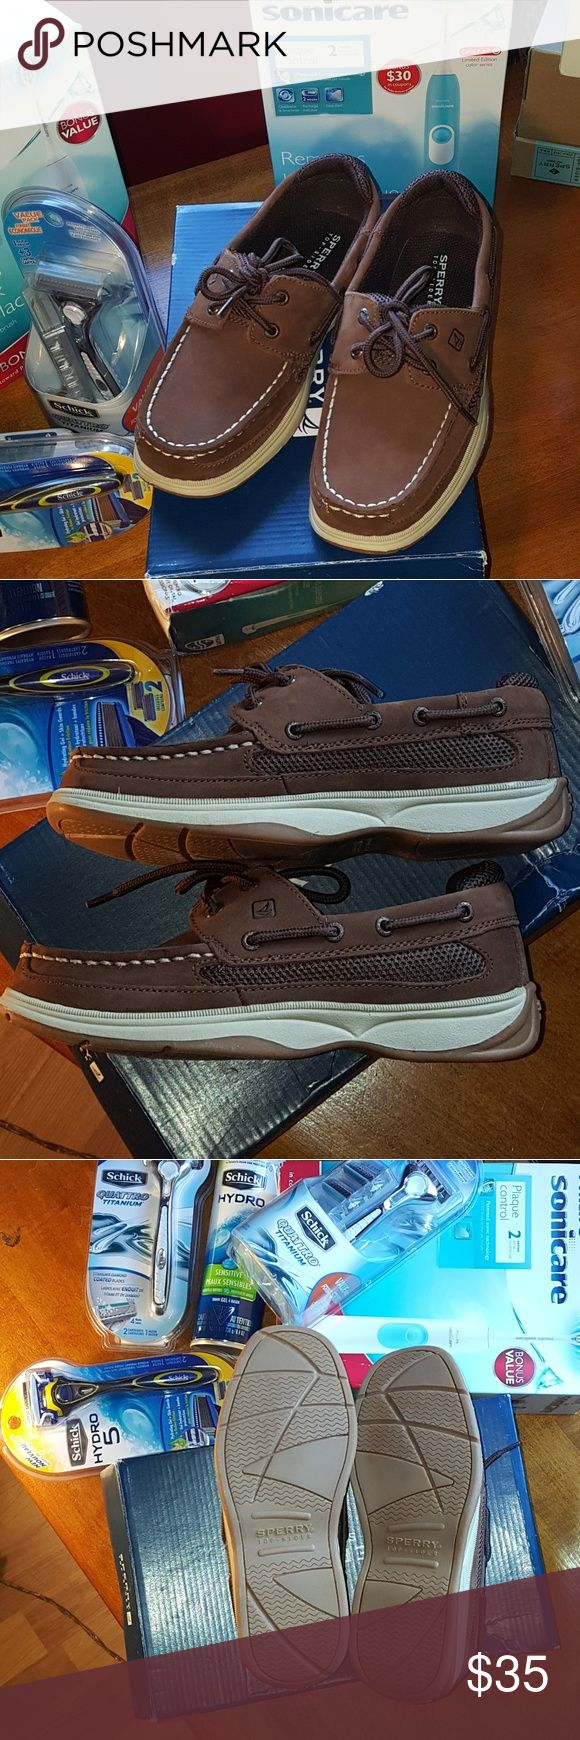 "Sperry shoes size Sperry kids top sider ""lanyard"" in cigar brown size 3m-features a hand-sewn leather construction, mesh panels for ventilation and an outsole that's specially designed to keep you stabilized on slippery surfaces. Leather/mesh uppers, lace-up front, rubber outsole. New in box.  See my closet for other great items clothes bundles save 10 to 20% on 2 or more items. Clearance marked: 🇺🇸30 😎20% just deduct & use offer button i will accept. Sperry Top-Sider Shoes"